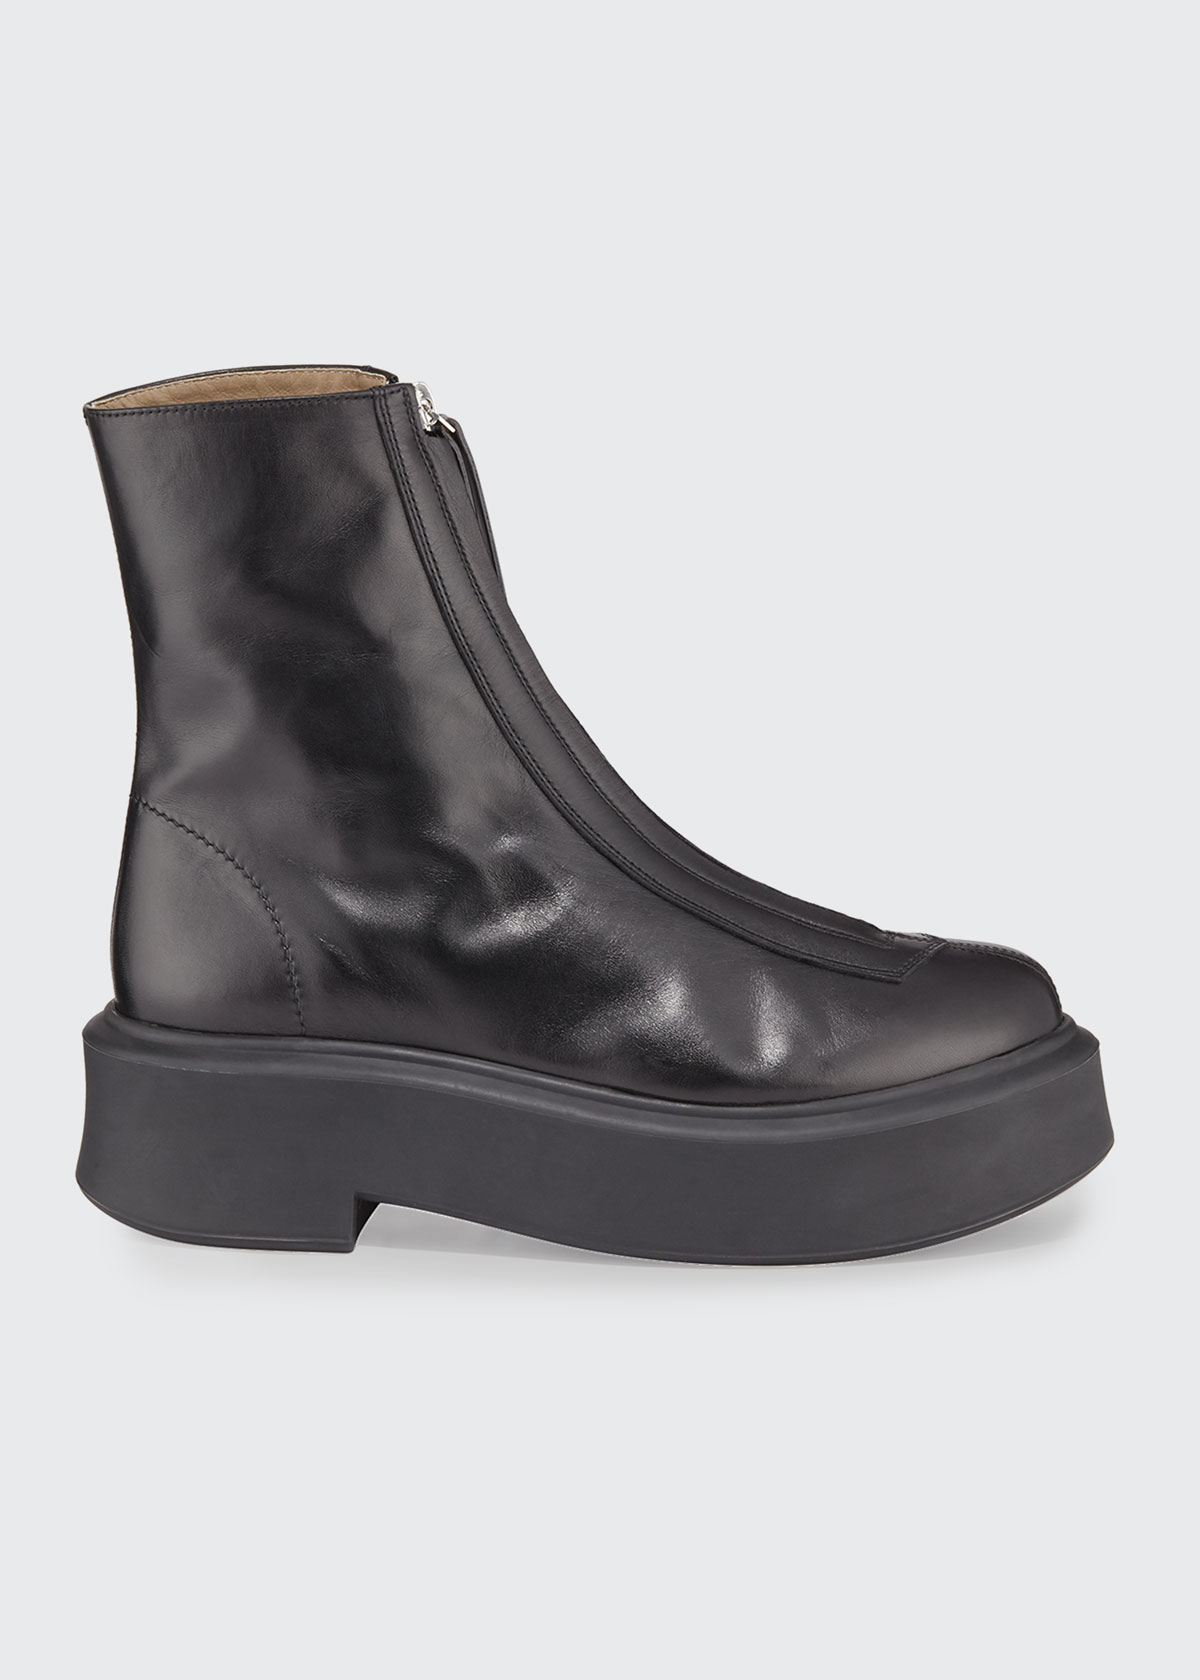 Zipped Boots in Leather by The Row, available on bergdorfgoodman.com for $1290 Kourtney Kardashian Shoes Exact Product